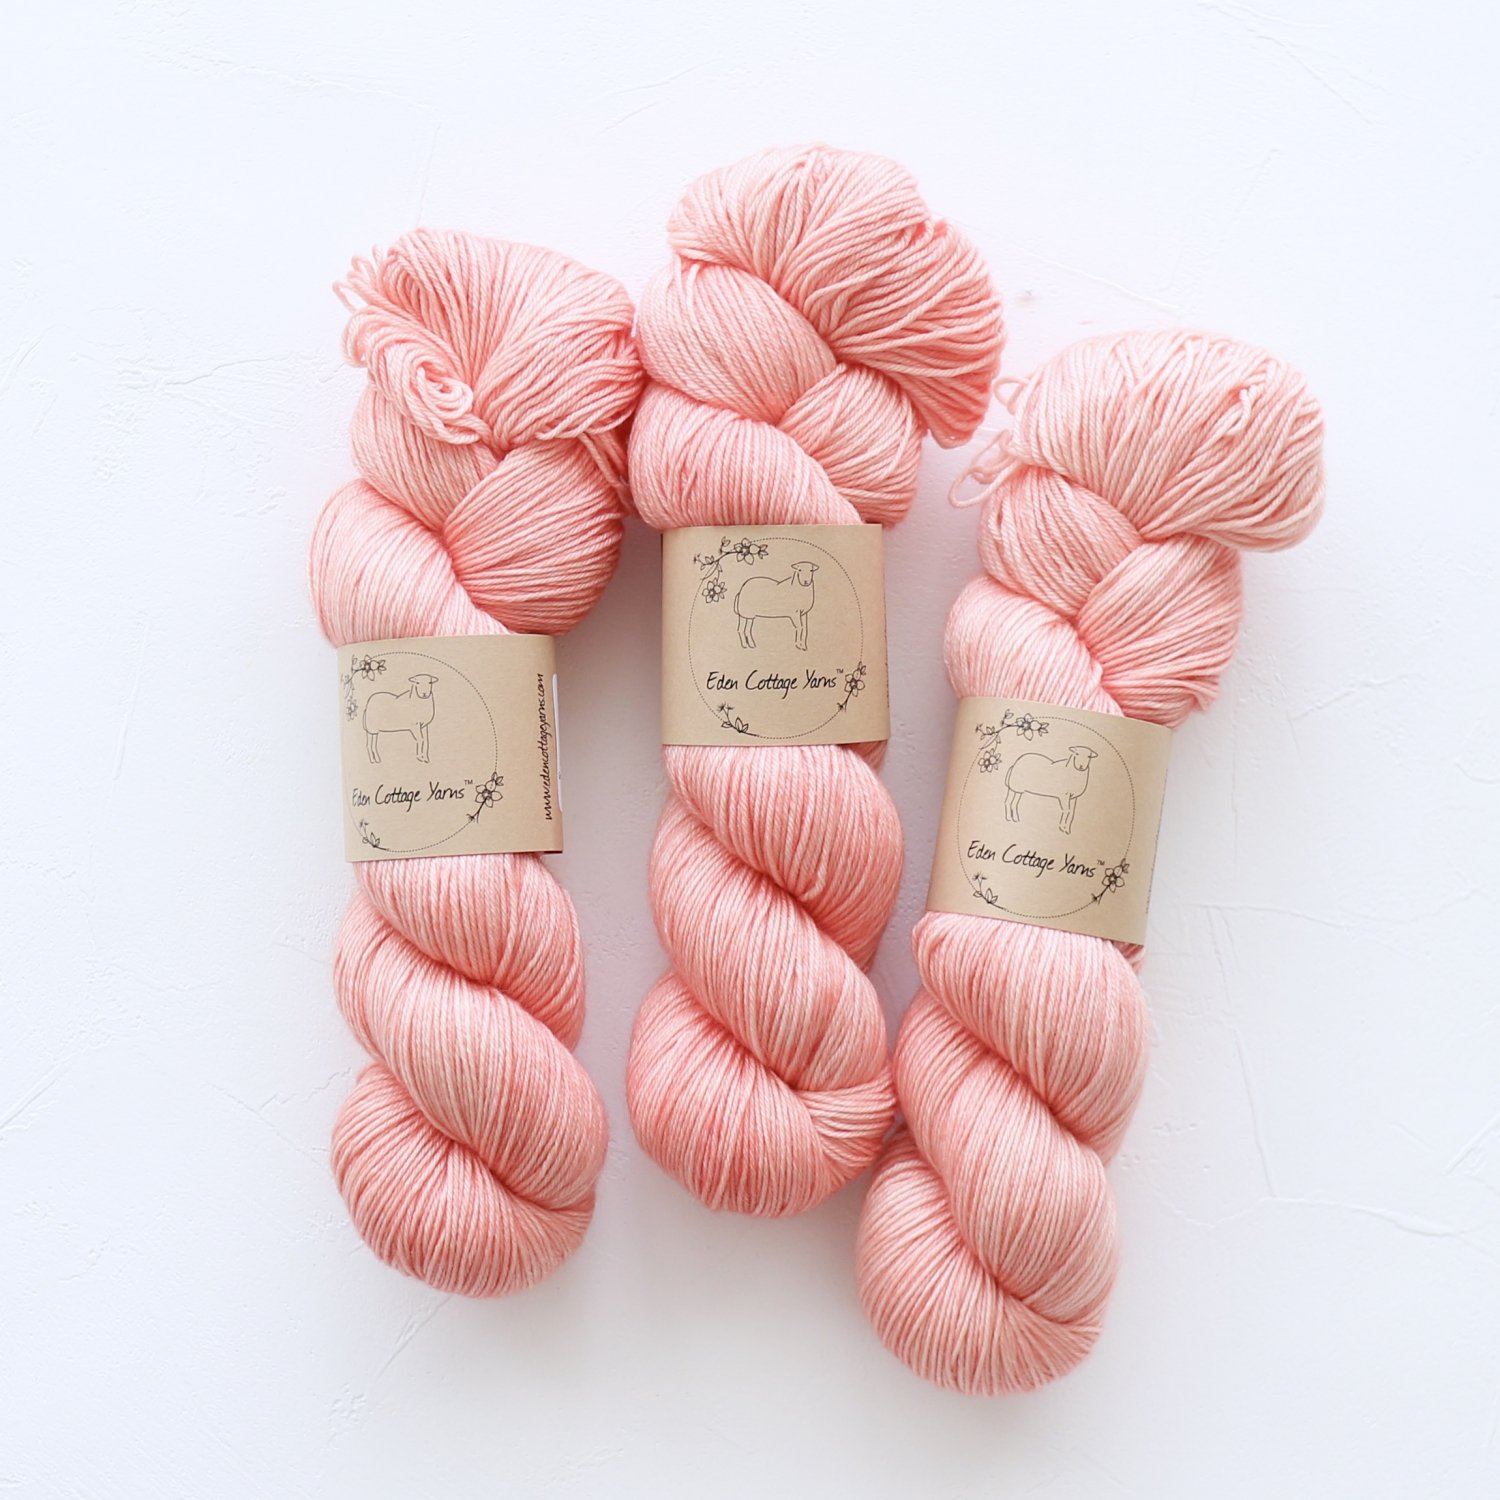 【Eden Cottage Yarns】<br>Pendle 4ply<br>Rosehip